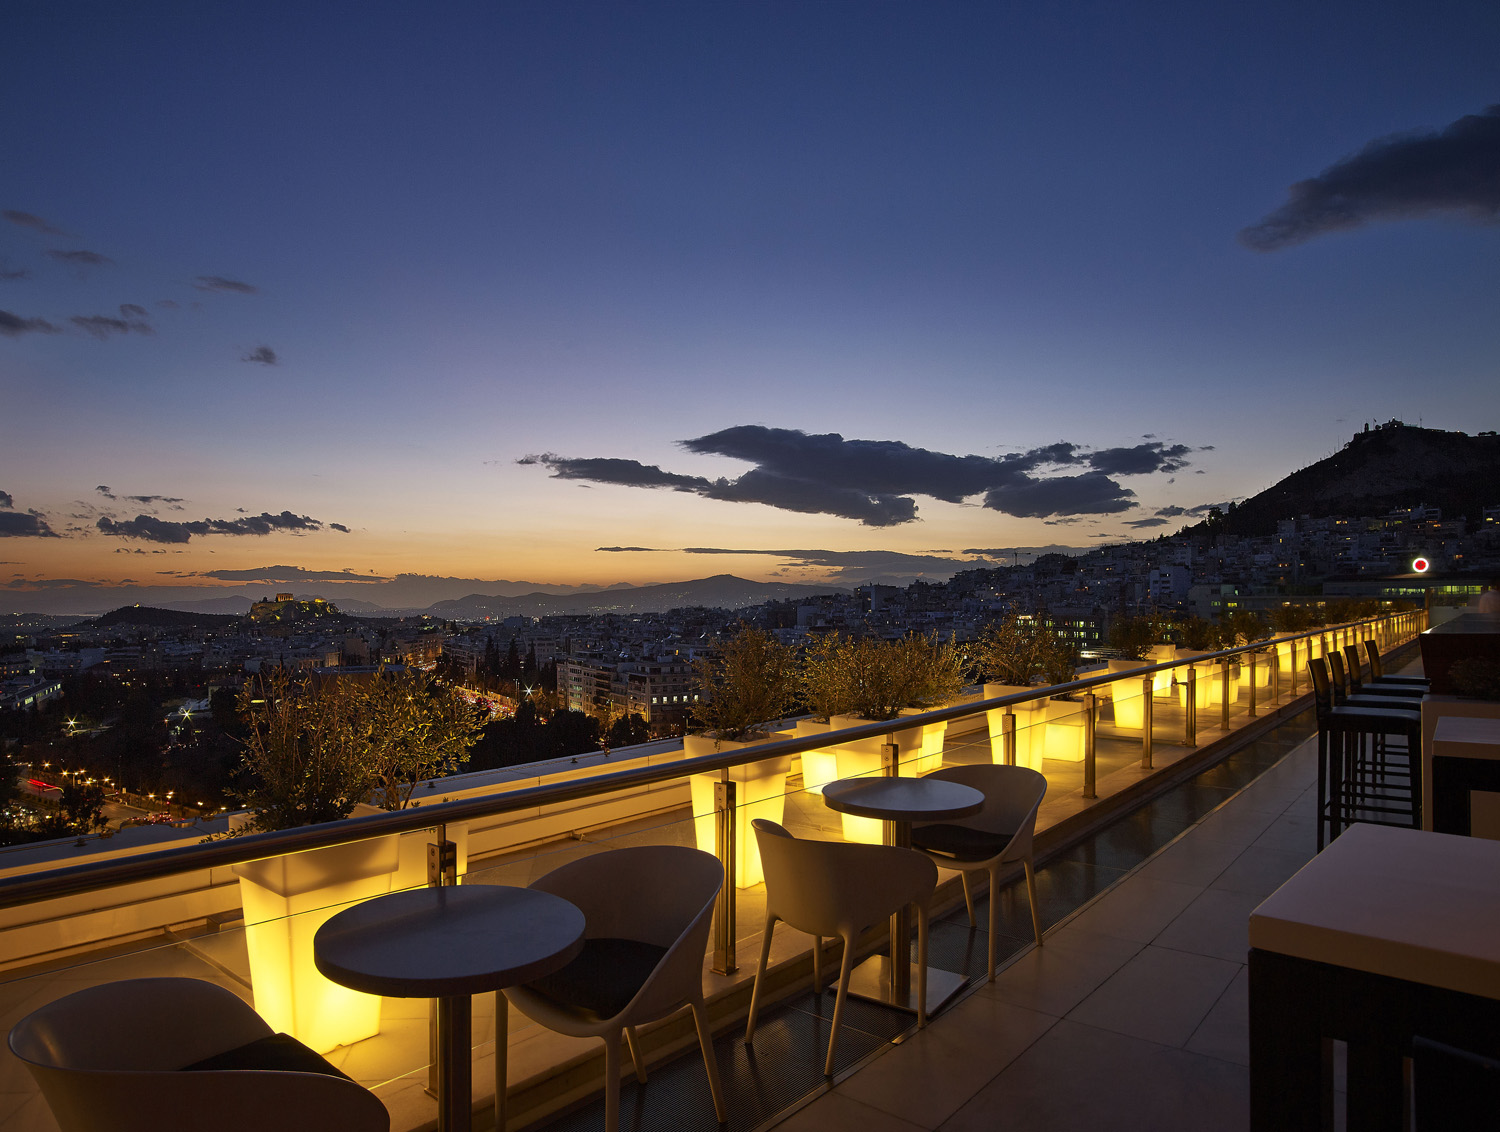 The Galaxy bar on the rooftop of Athens' Hilton (Picture courtesy of Hilton Hotel, Galaxy Bar)